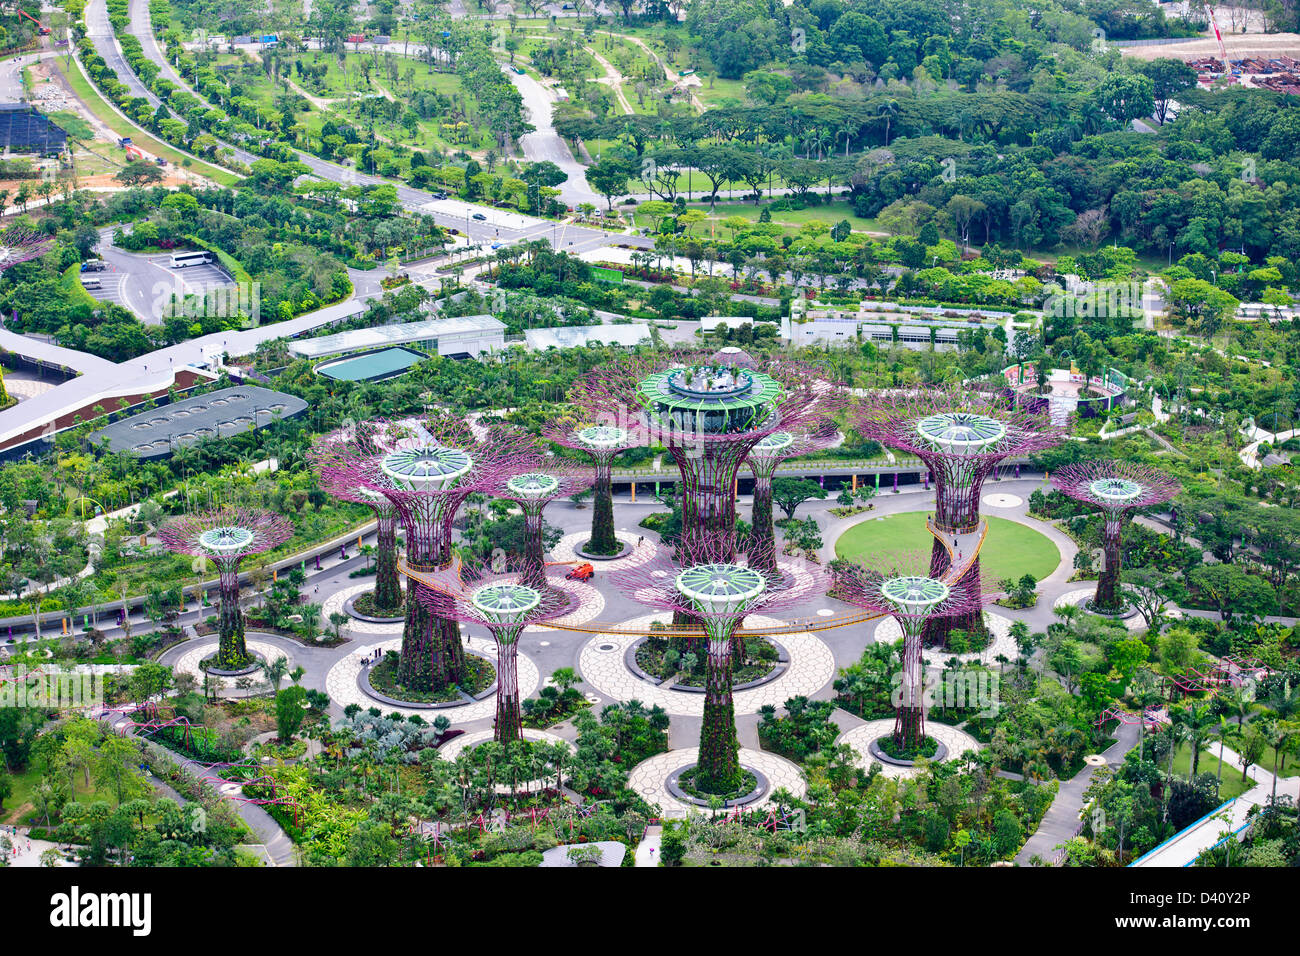 Marina Bay Sands Casino Deck Views Gardens By The Bay Flower